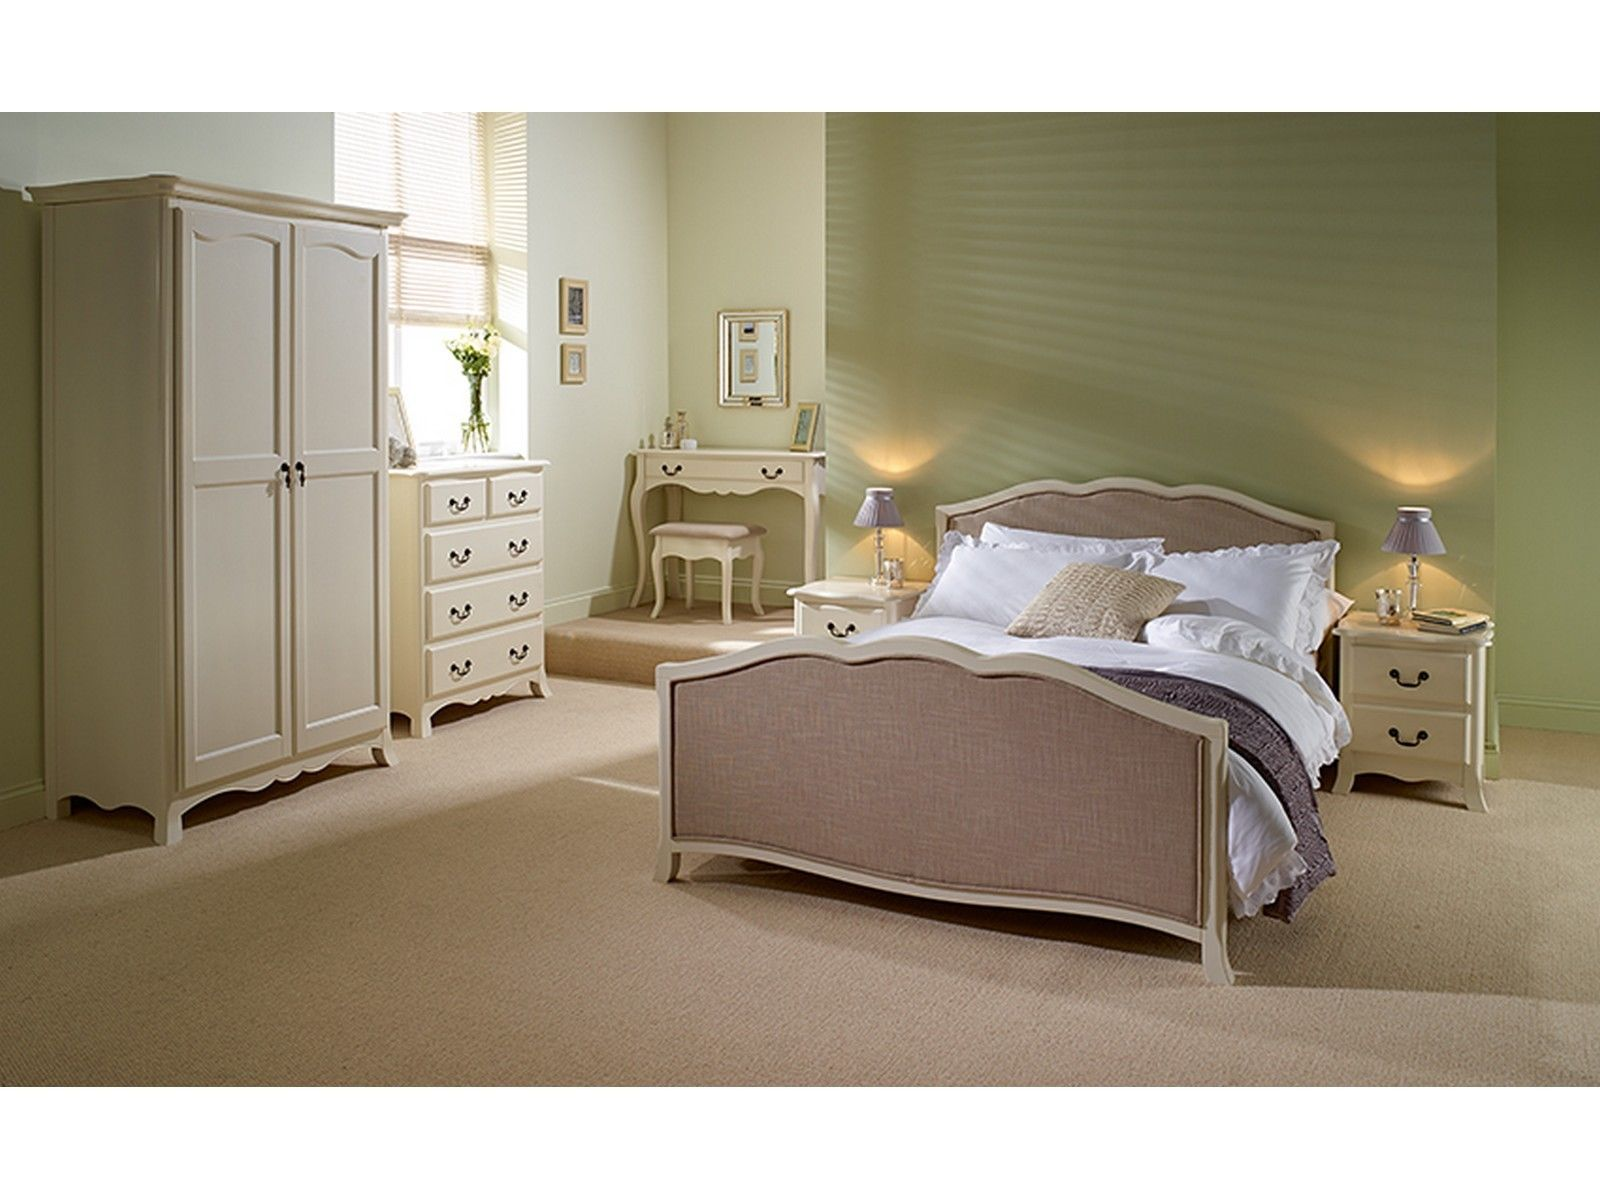 Brand new chantilly antique white french style bedroom - French style bedroom furniture sets ...